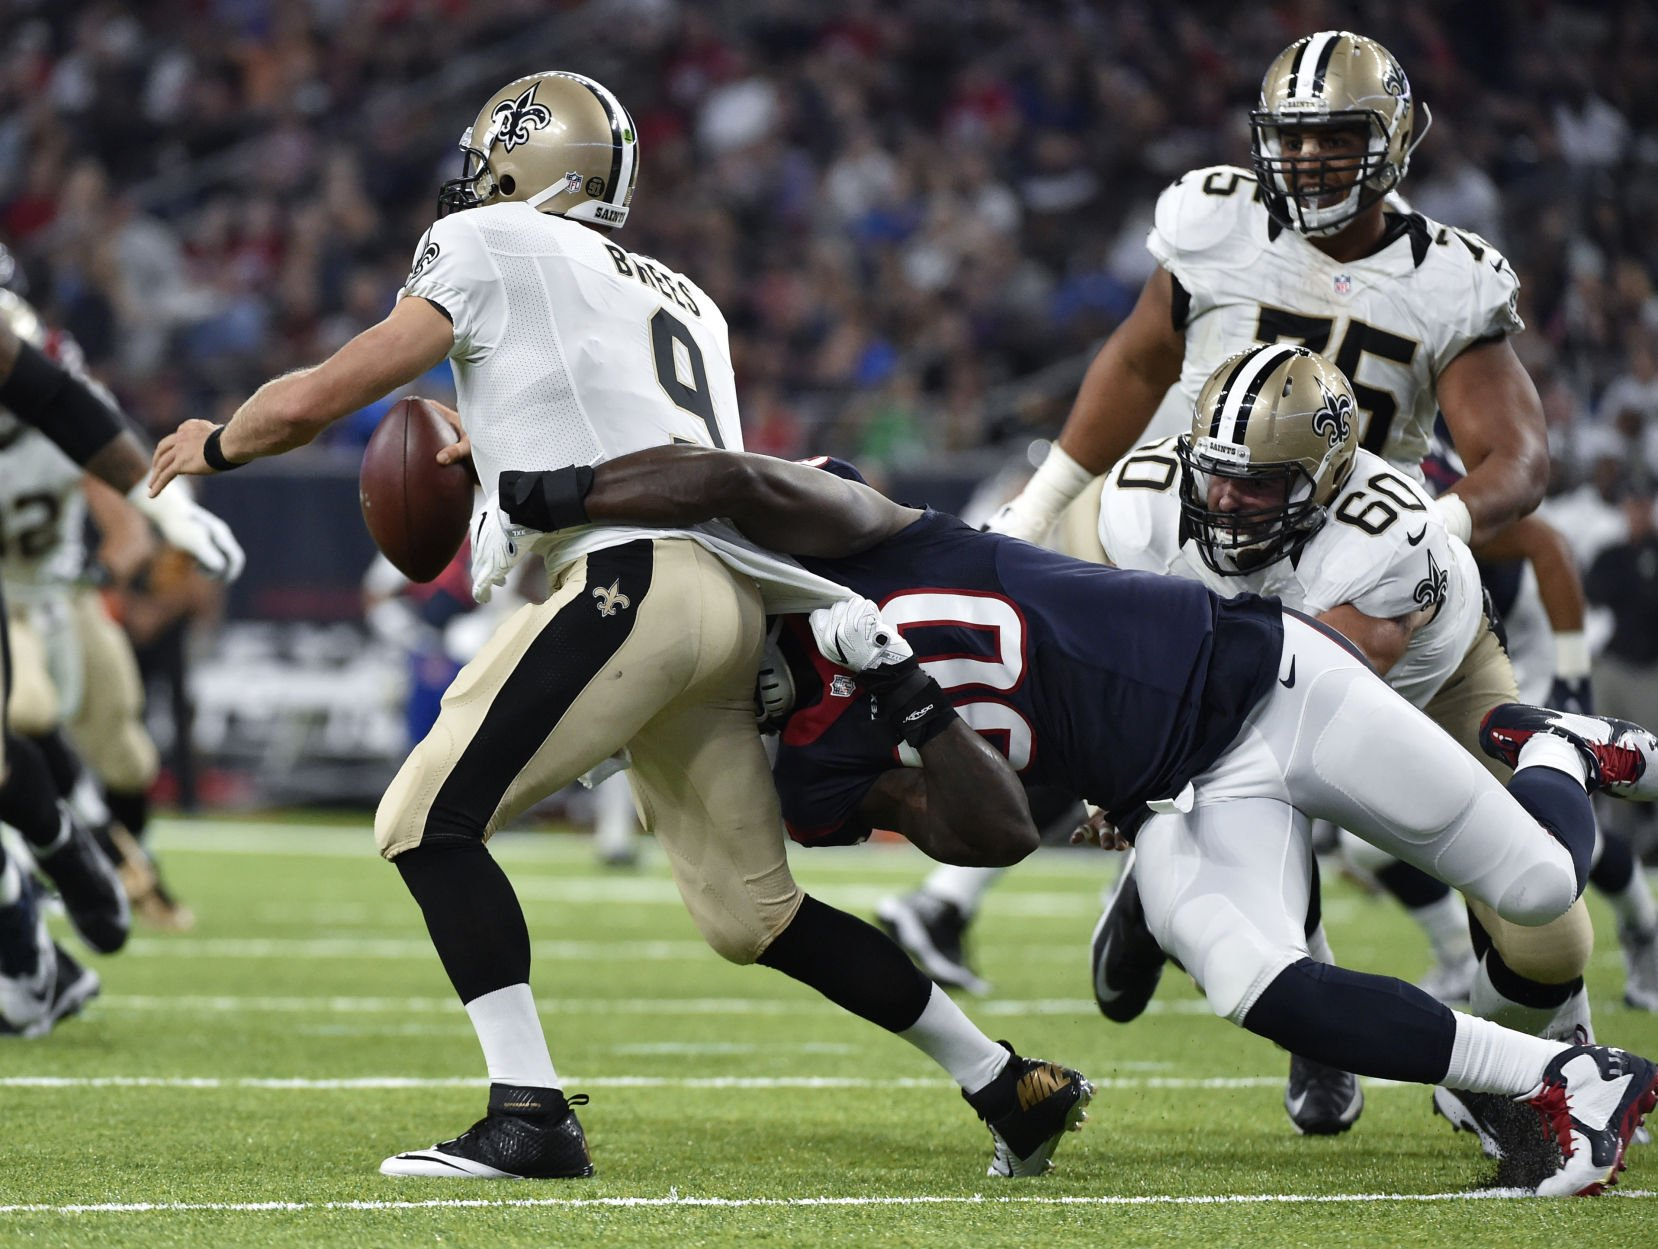 Texans fall to New Orleans Saints 13-0 in preseason game